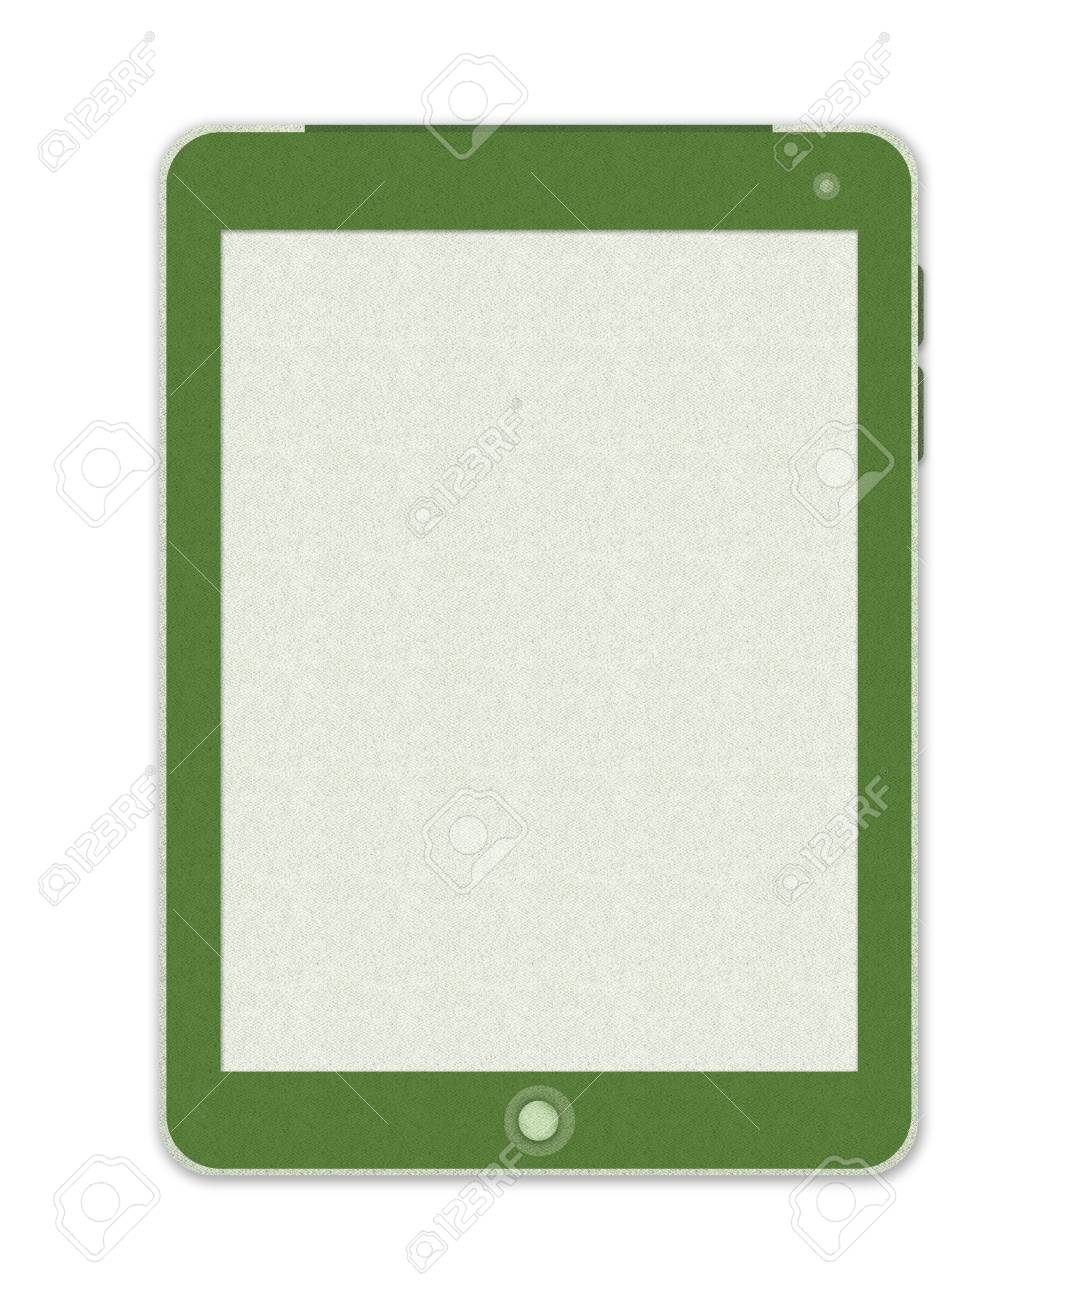 Green Tablet PC Made From Recycle Paper With Blank Screen Isolate on White Background Stock Photo - 17509935